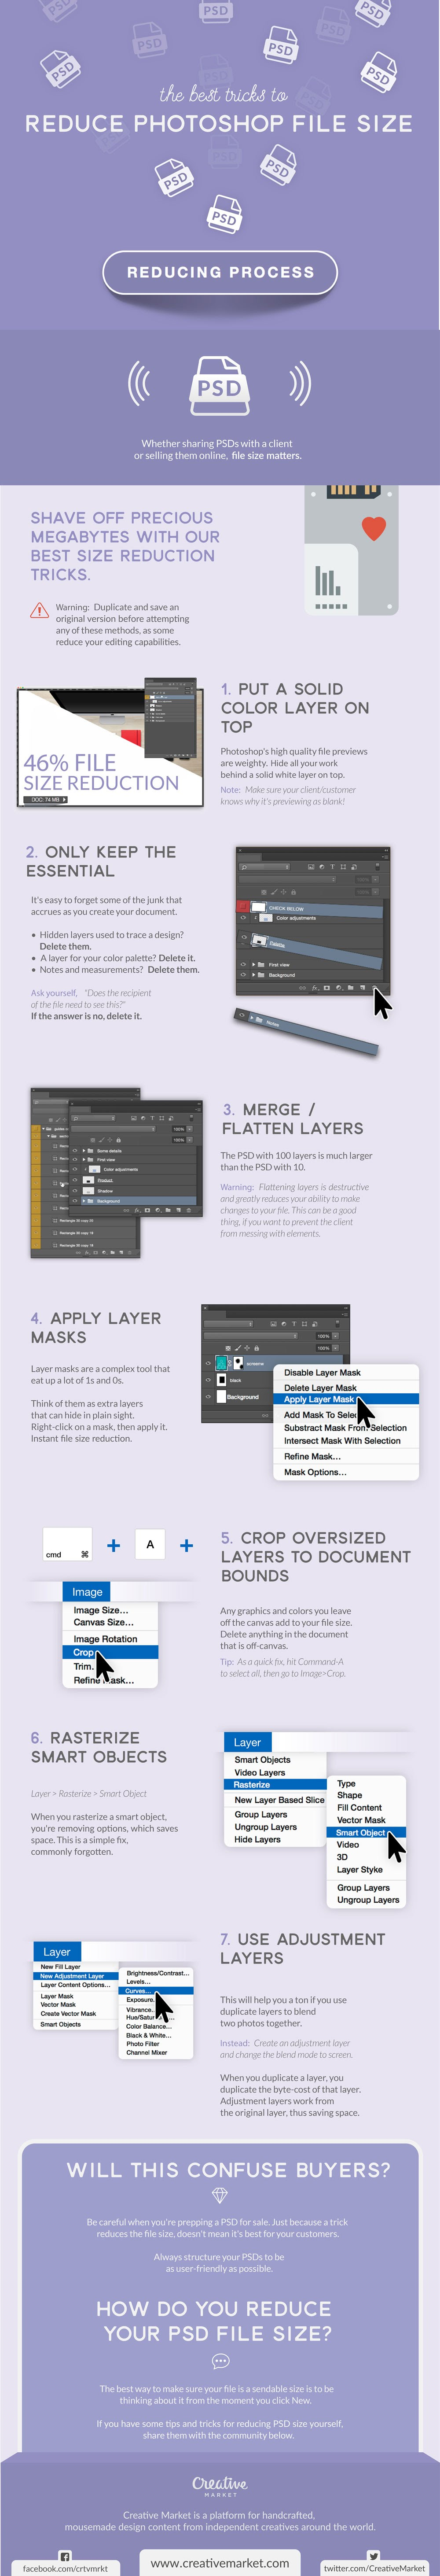 The Best Tricks to Reduce Photoshop File Size - #infographic